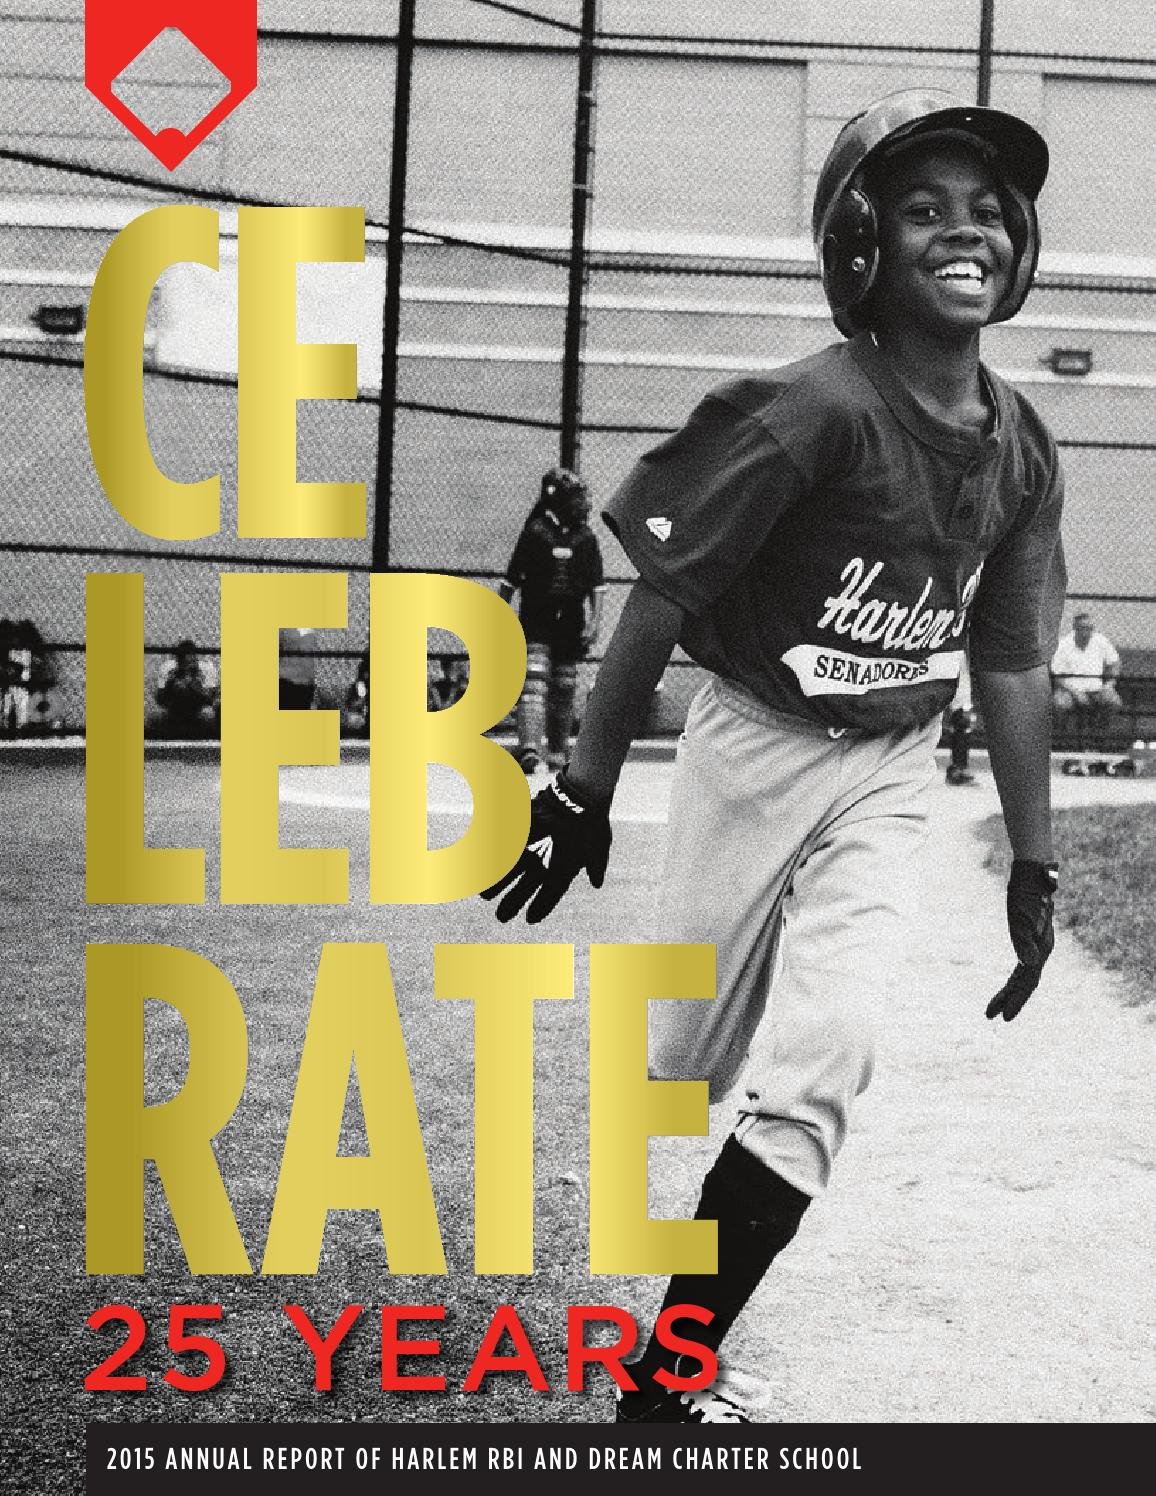 Harlem Rbi And Dream Charter School Annual Report 2015 By